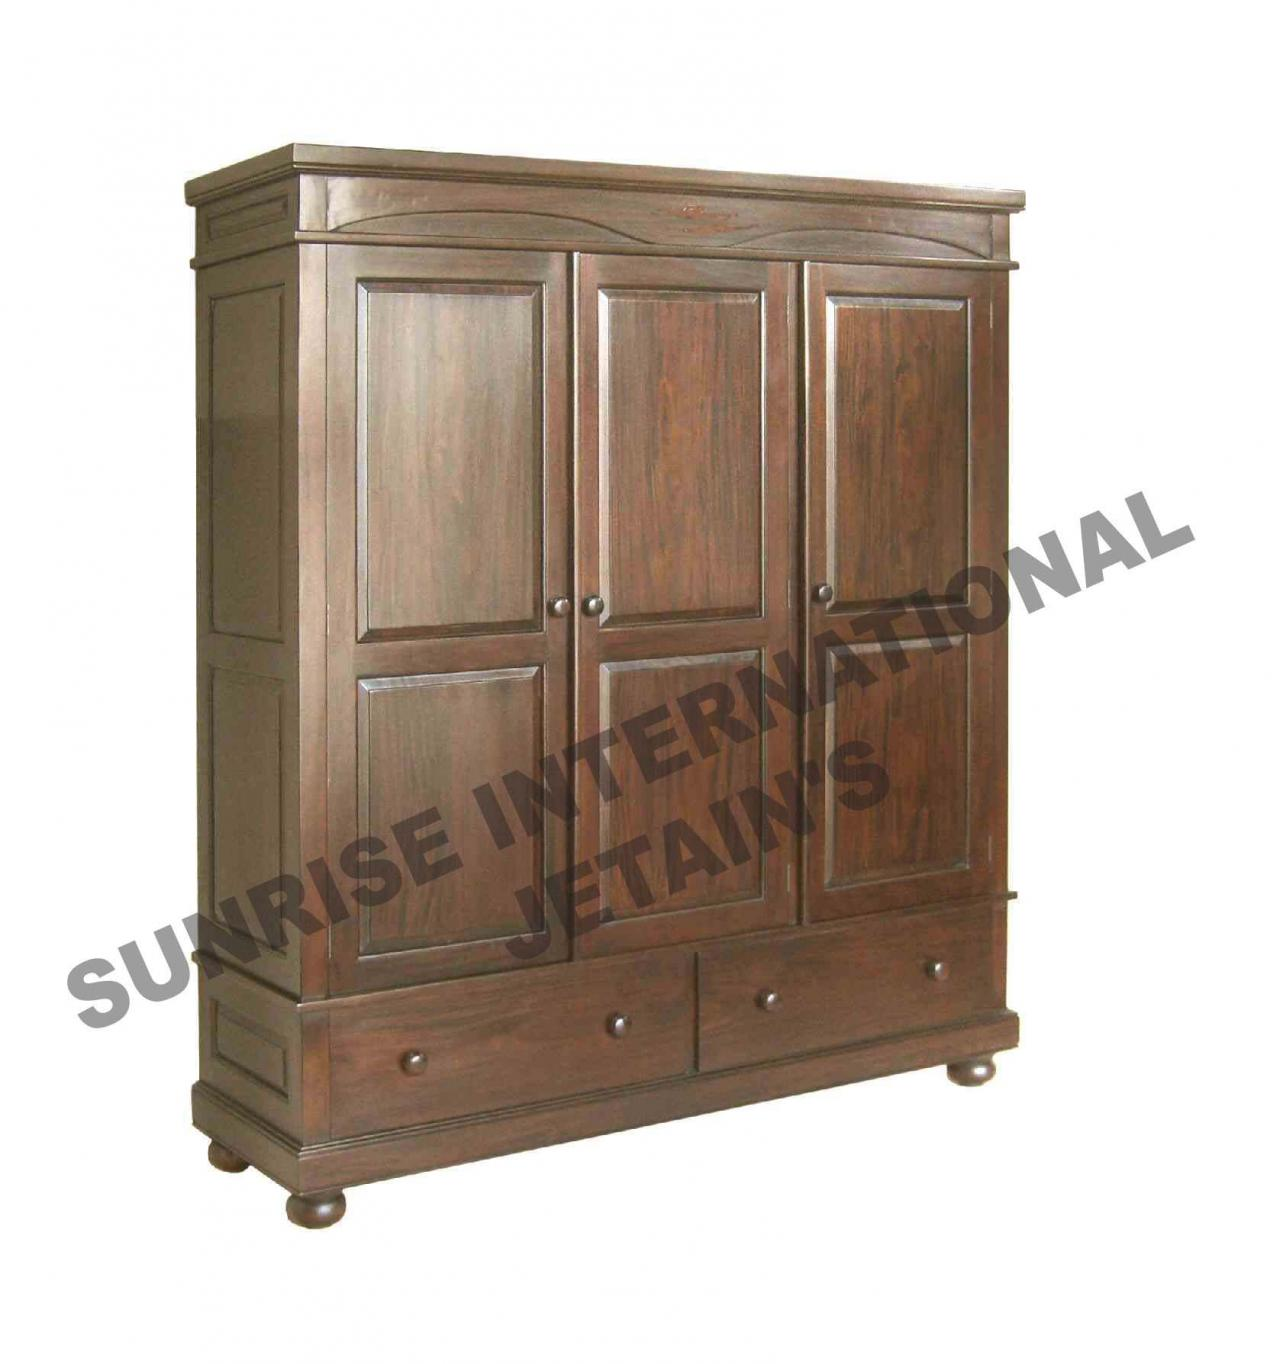 Sunrise international wooden almirah wardrobes for Pics of wooden almirah